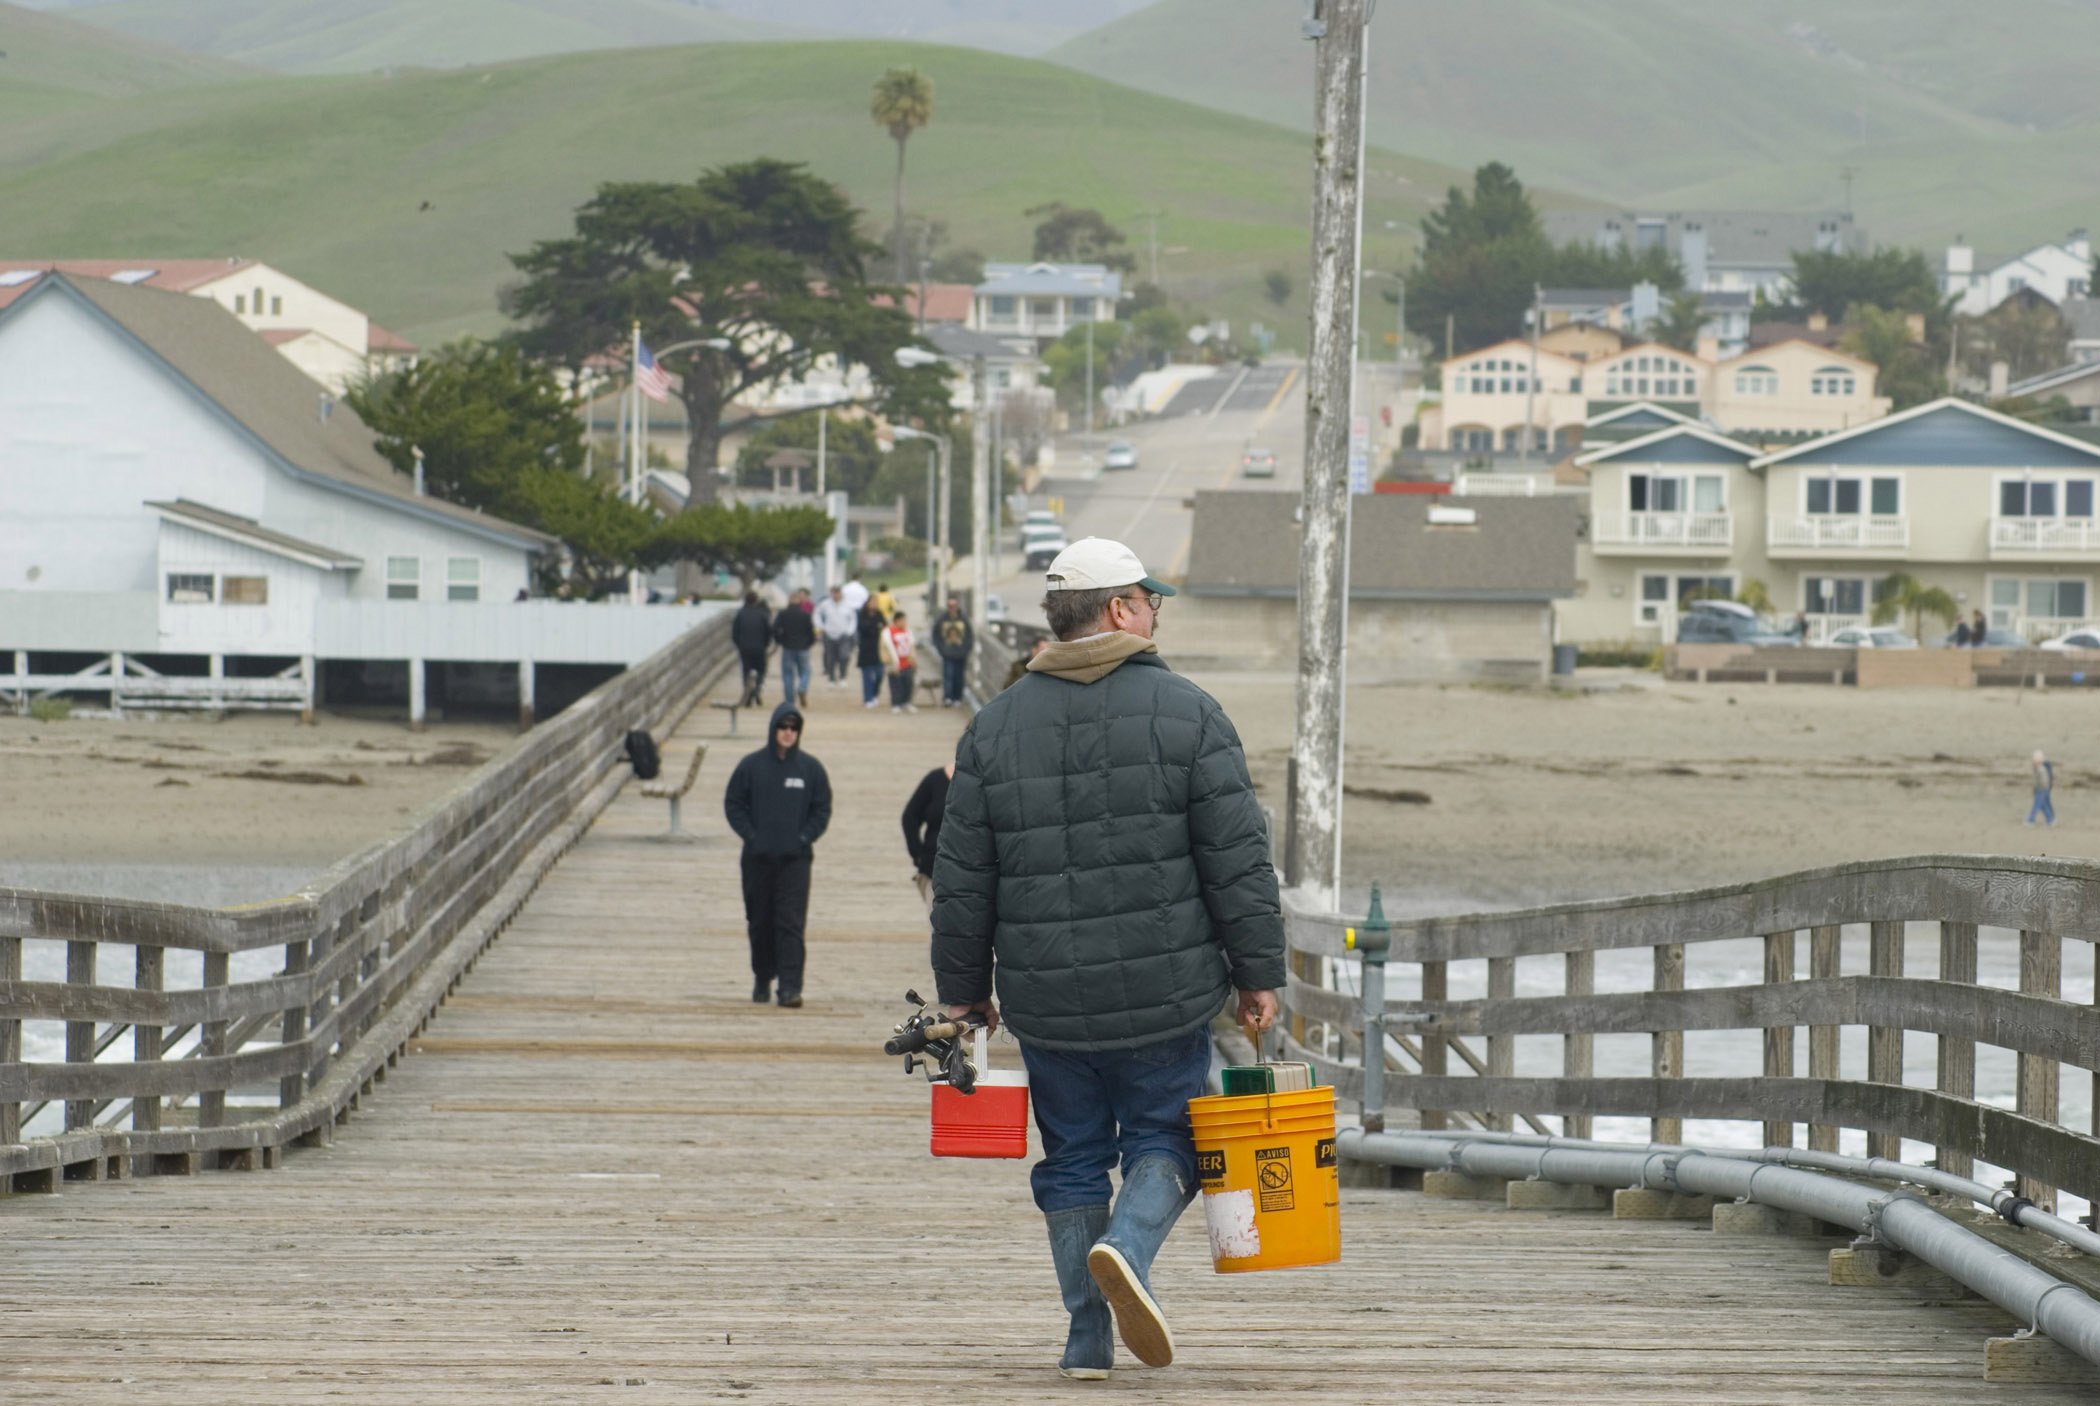 Fisherman with Buckets on Cayucos Pier, California, USA